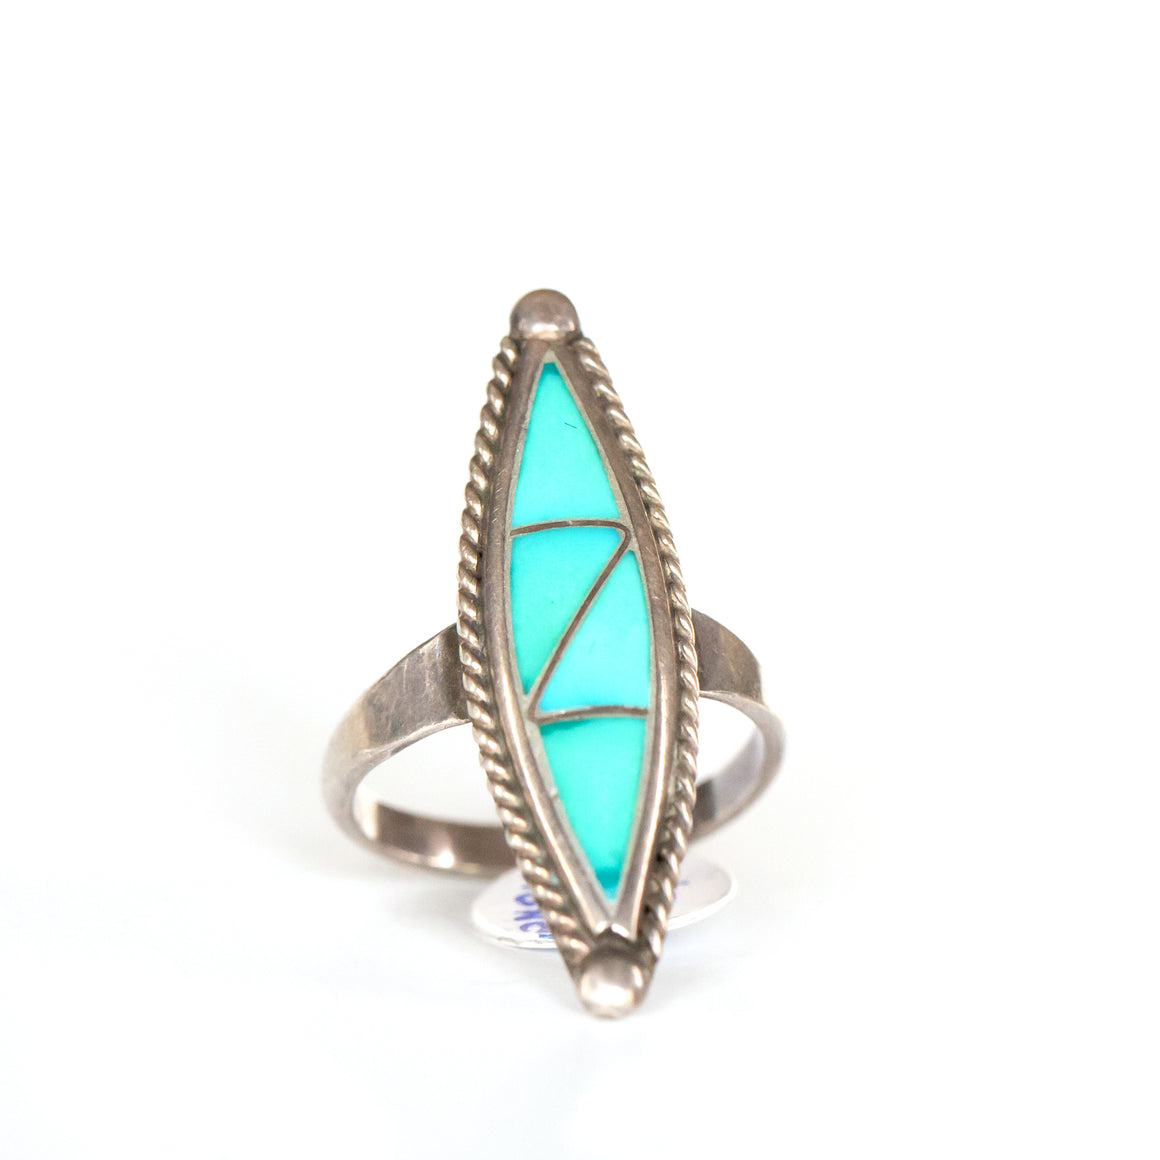 VINTAGE JEWELRY | ZUNI TURQUOISE STERLING RING (SIZE 7)